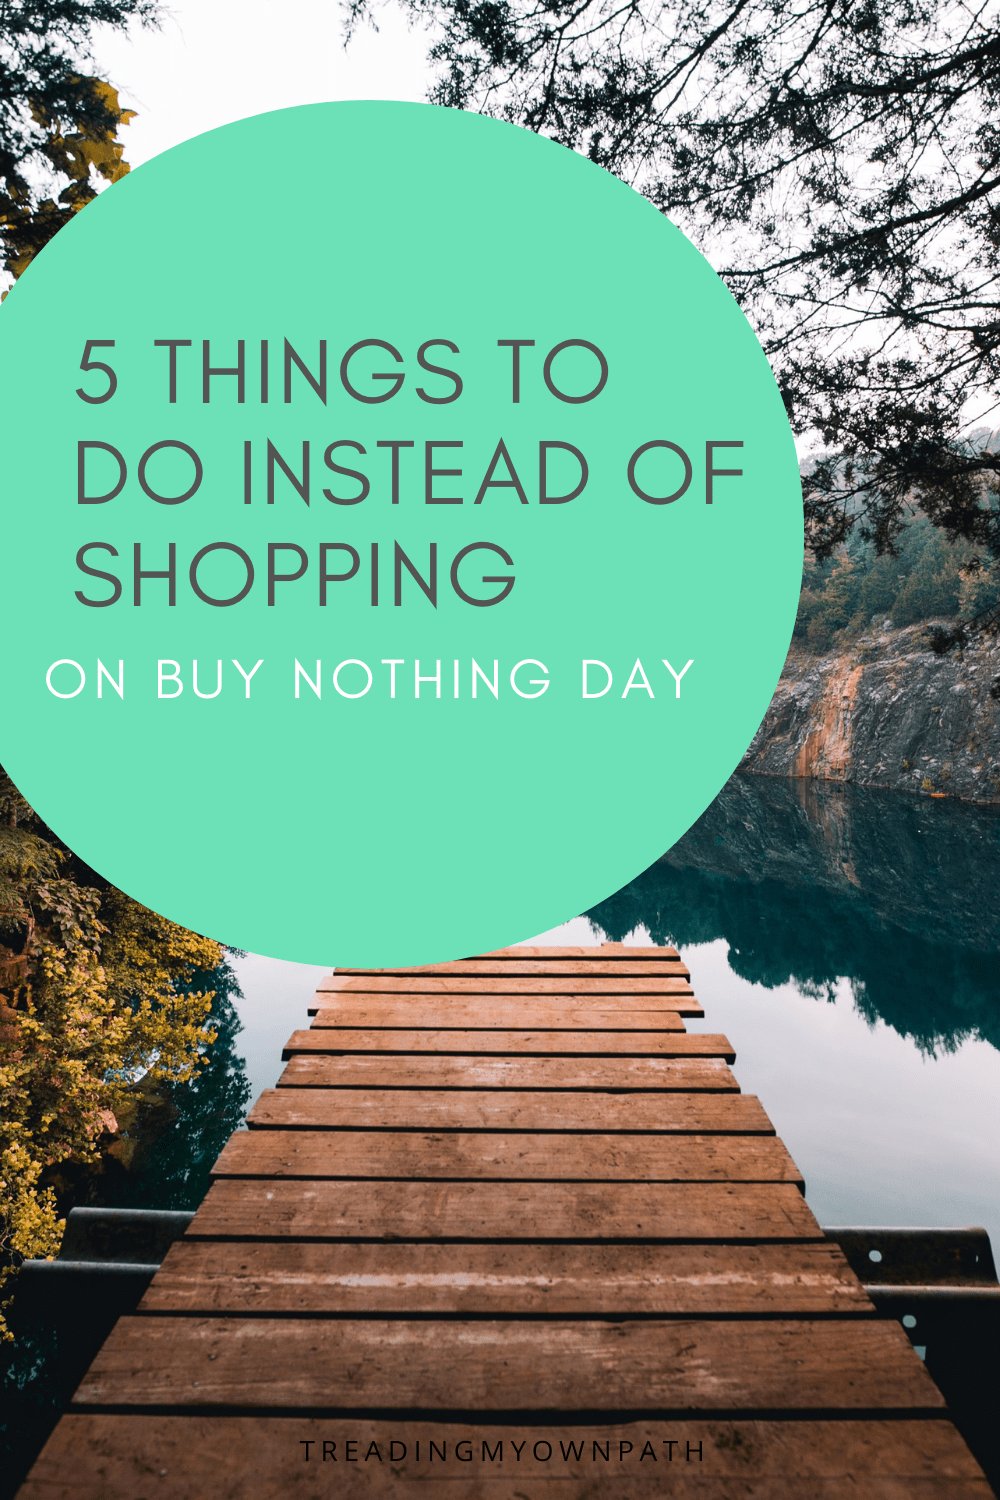 Buy Nothing Day: 5 Things To Do Instead of Shopping